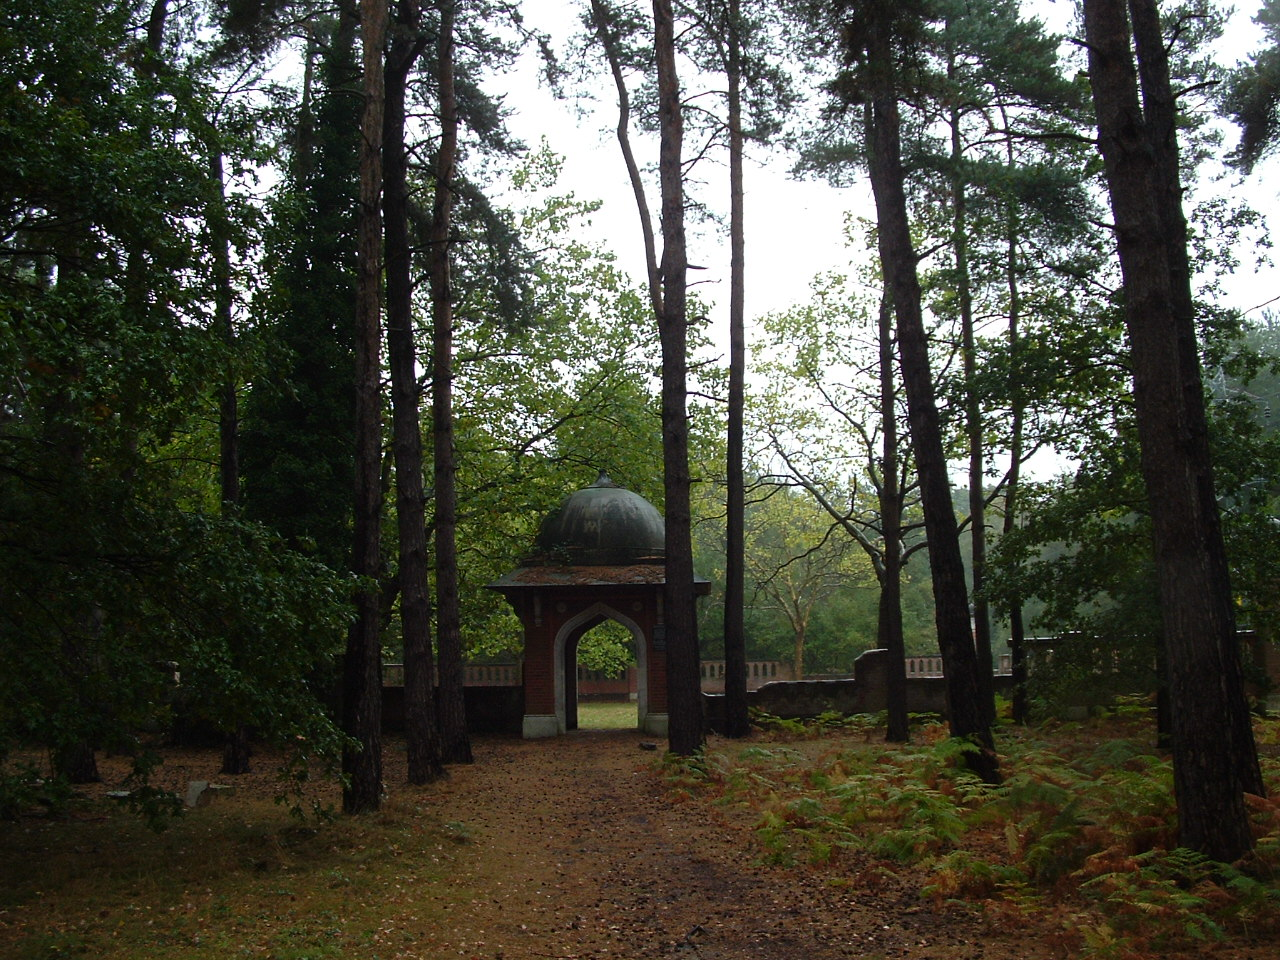 woking muslim The story of the newly restored muslim burial ground and peace garden on horsell common in woking.